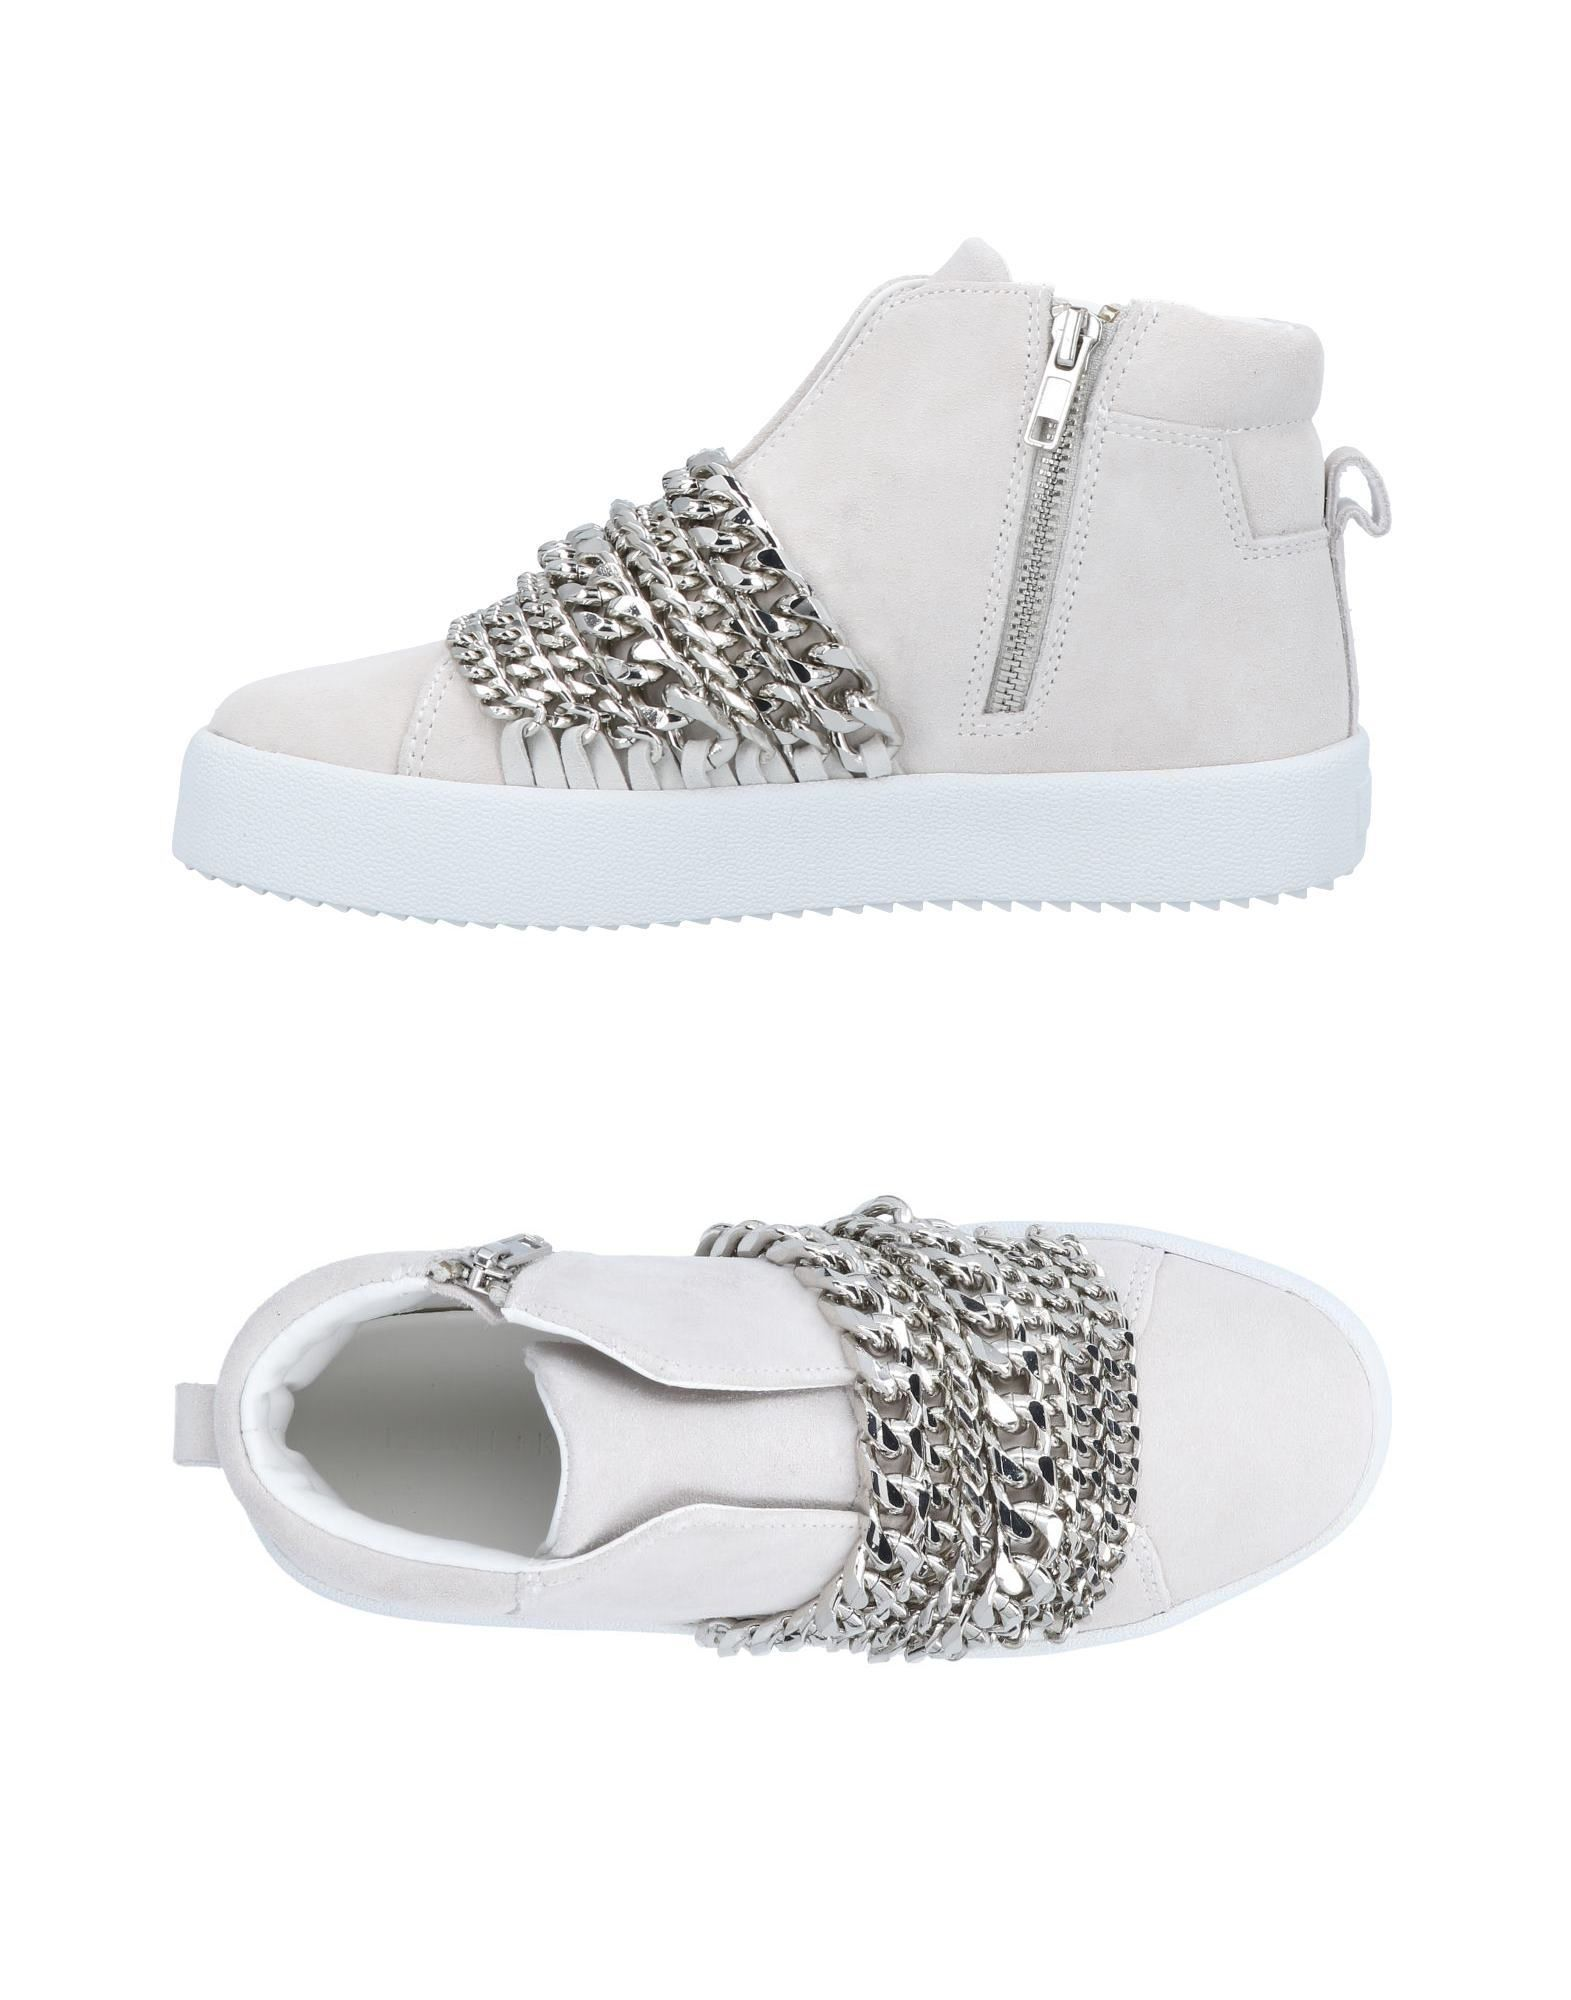 Kendall + Kylie Ivory Leather Sneakers